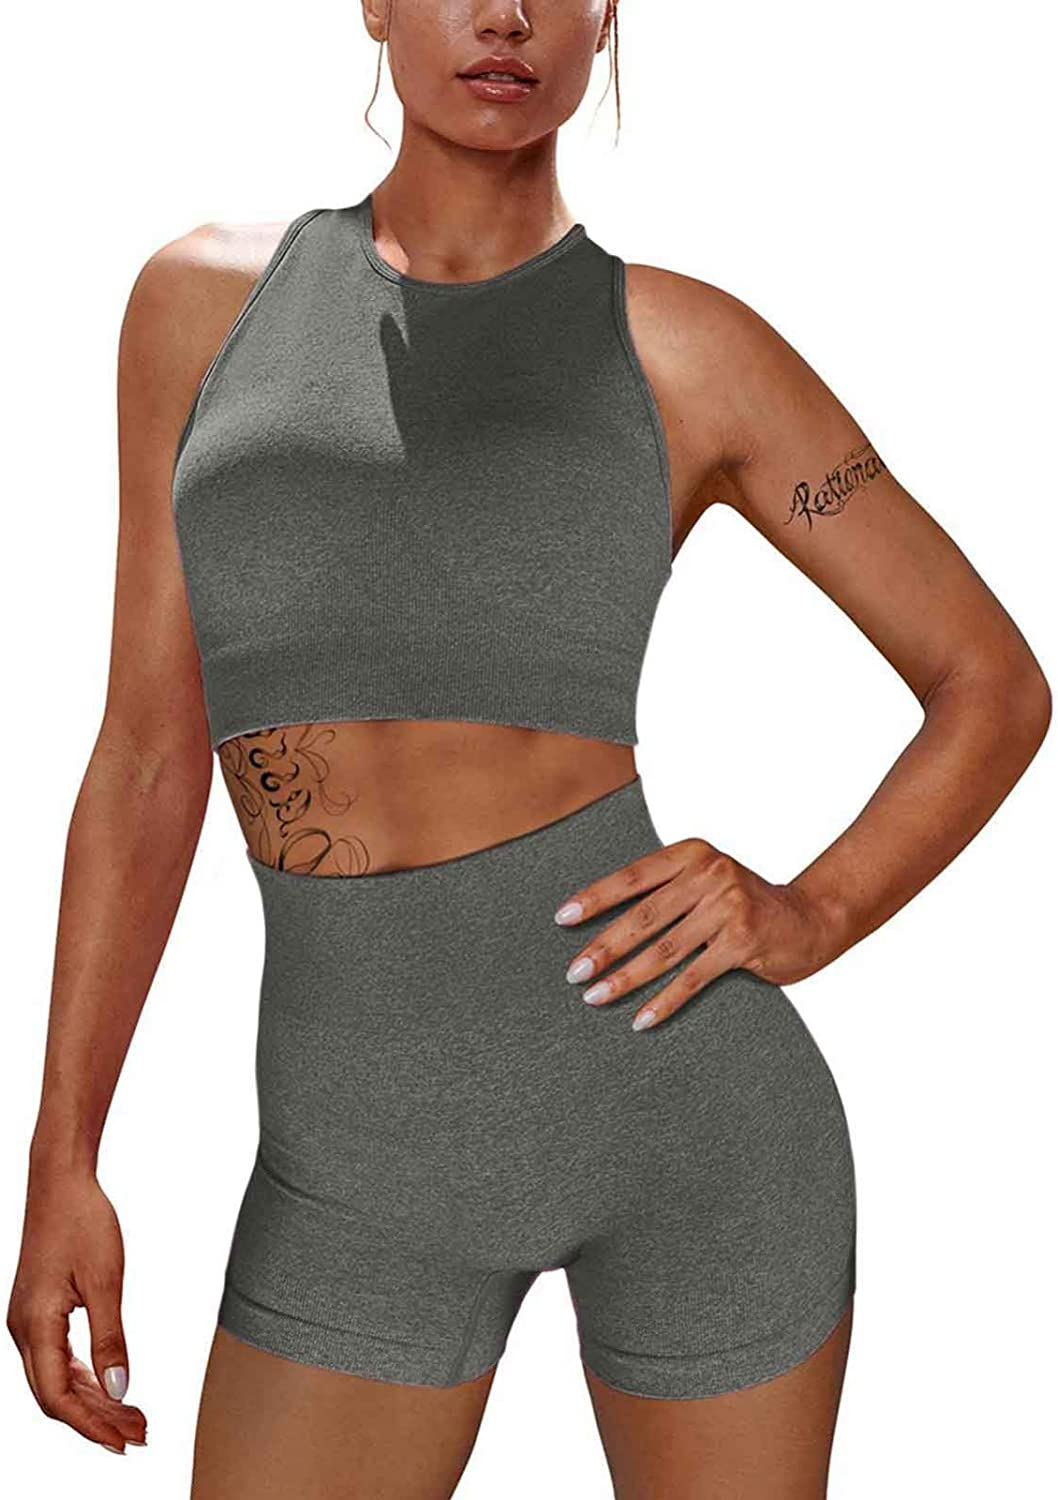 Workout Sets for Women 2 Piece Seamless Ribbed Tank High Waist Yoga Outfits